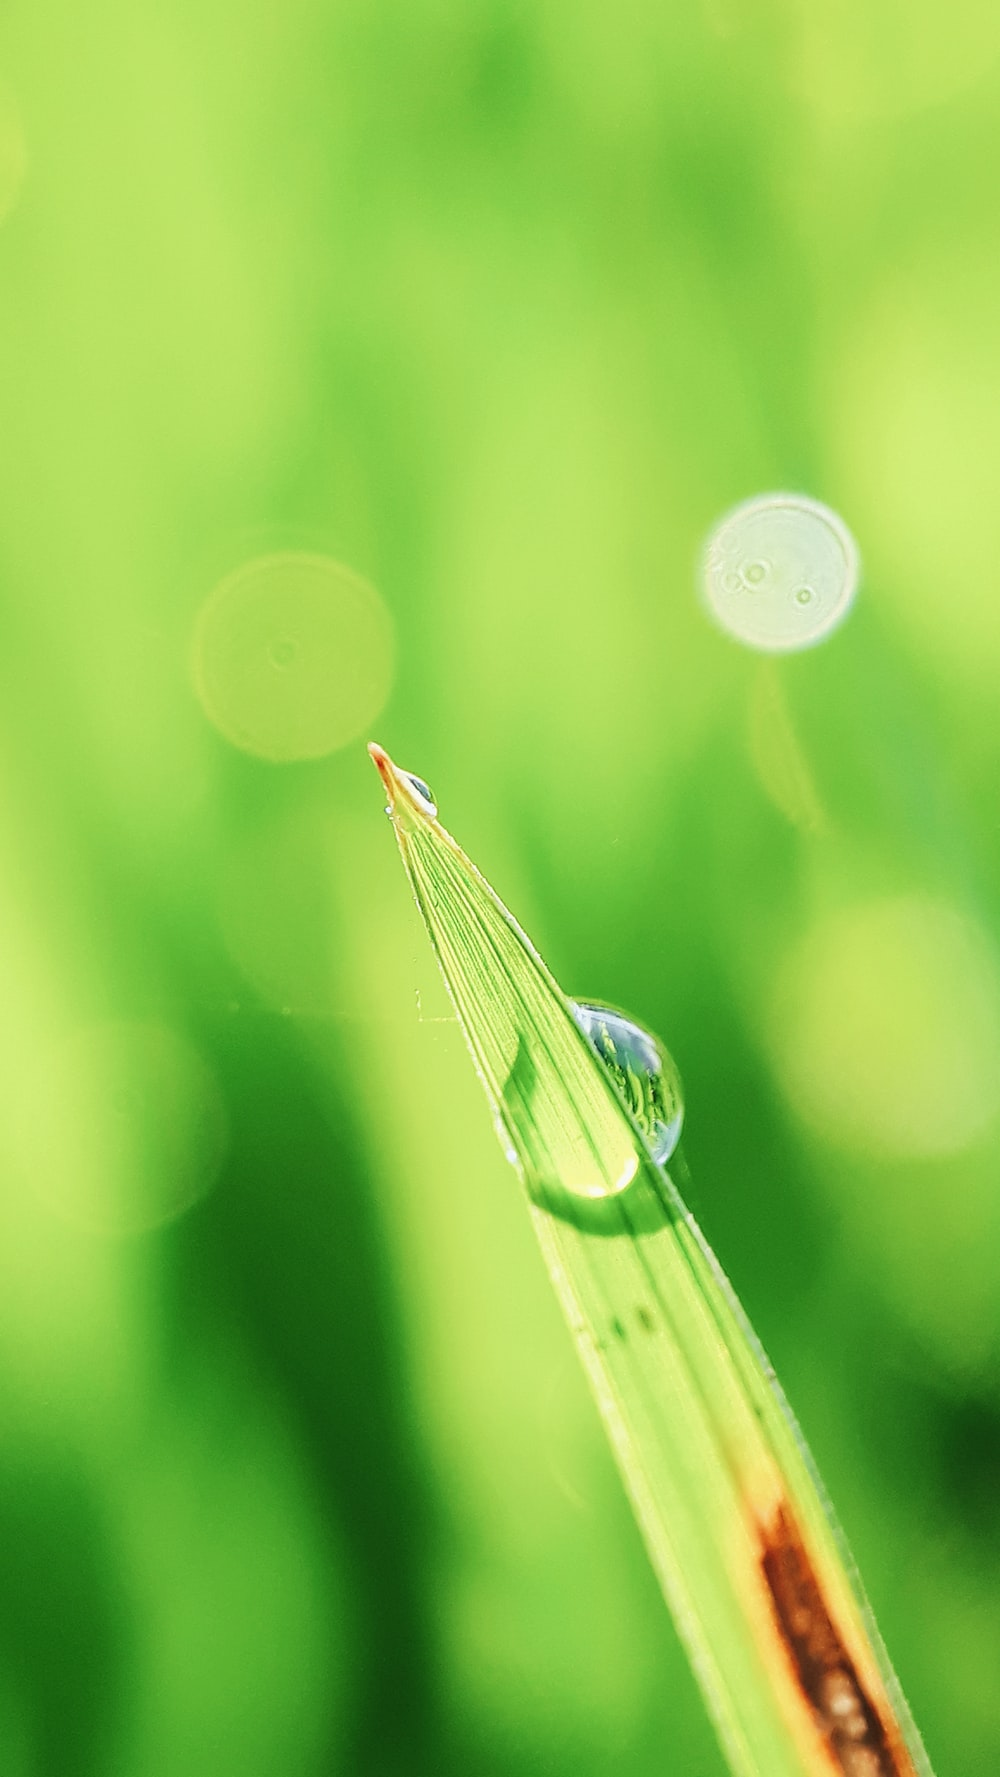 selective focus photography of dew drop on green leaf